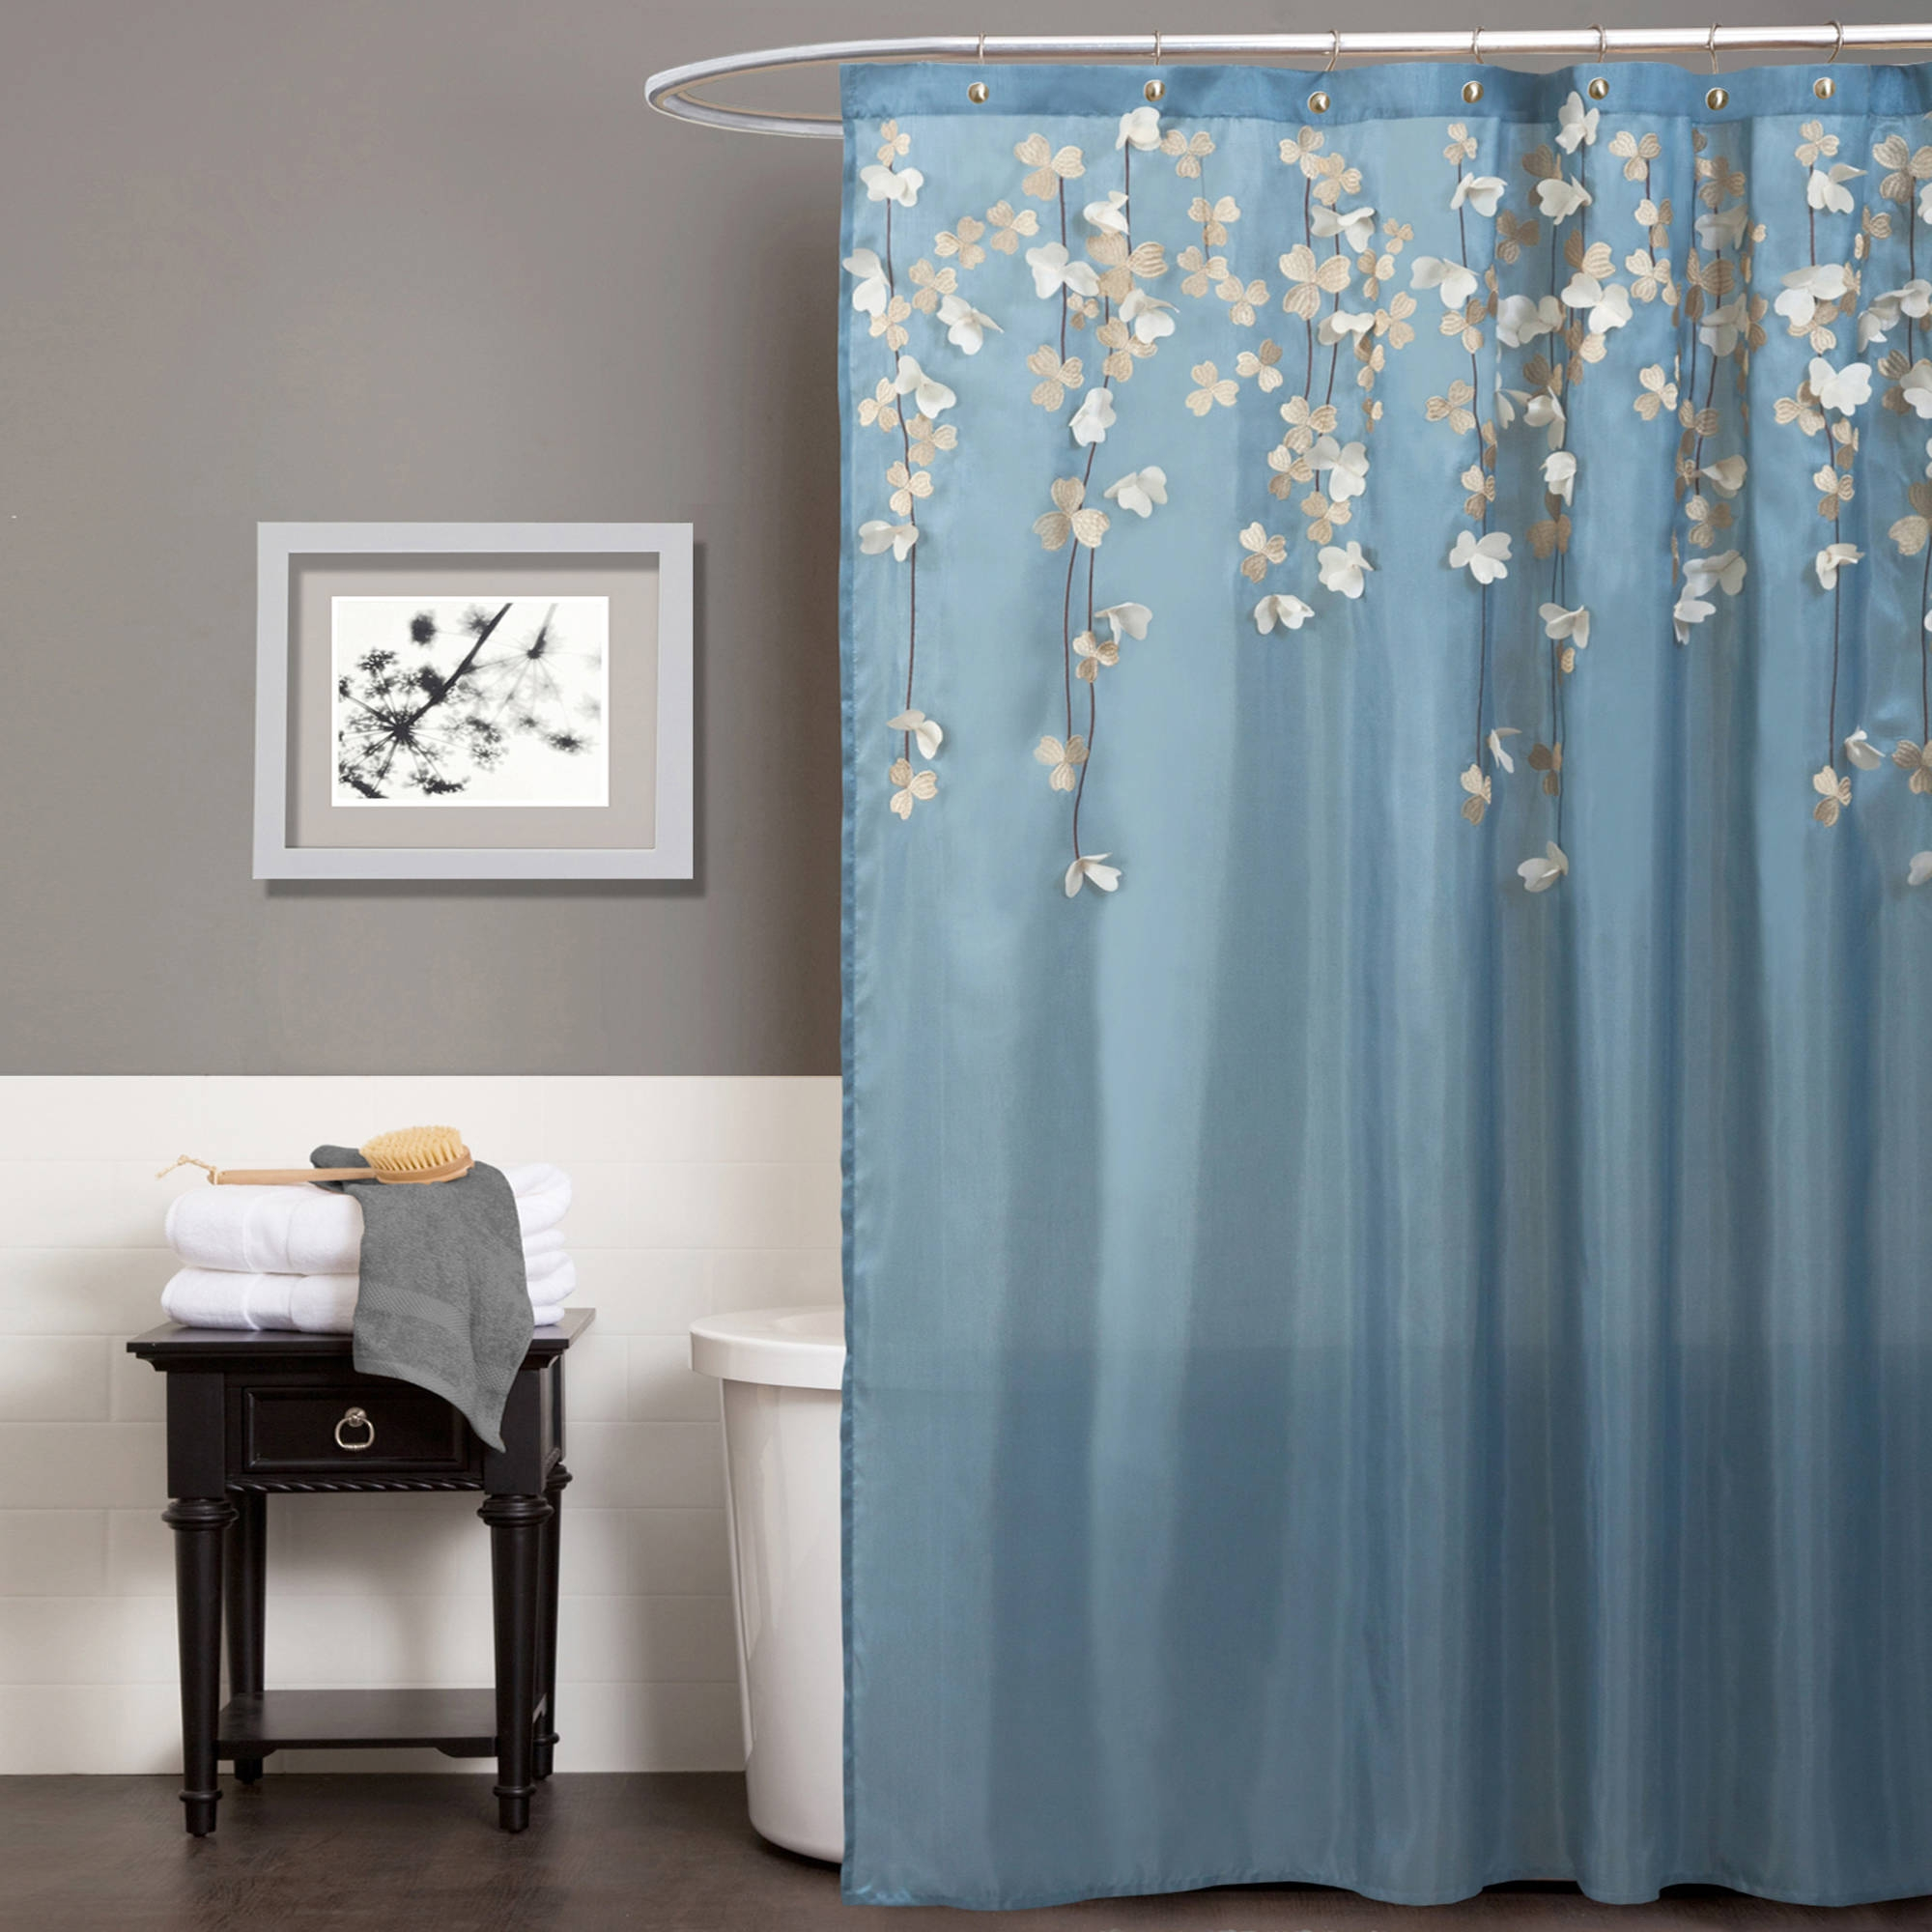 Best Rated Shower Curtain Liners